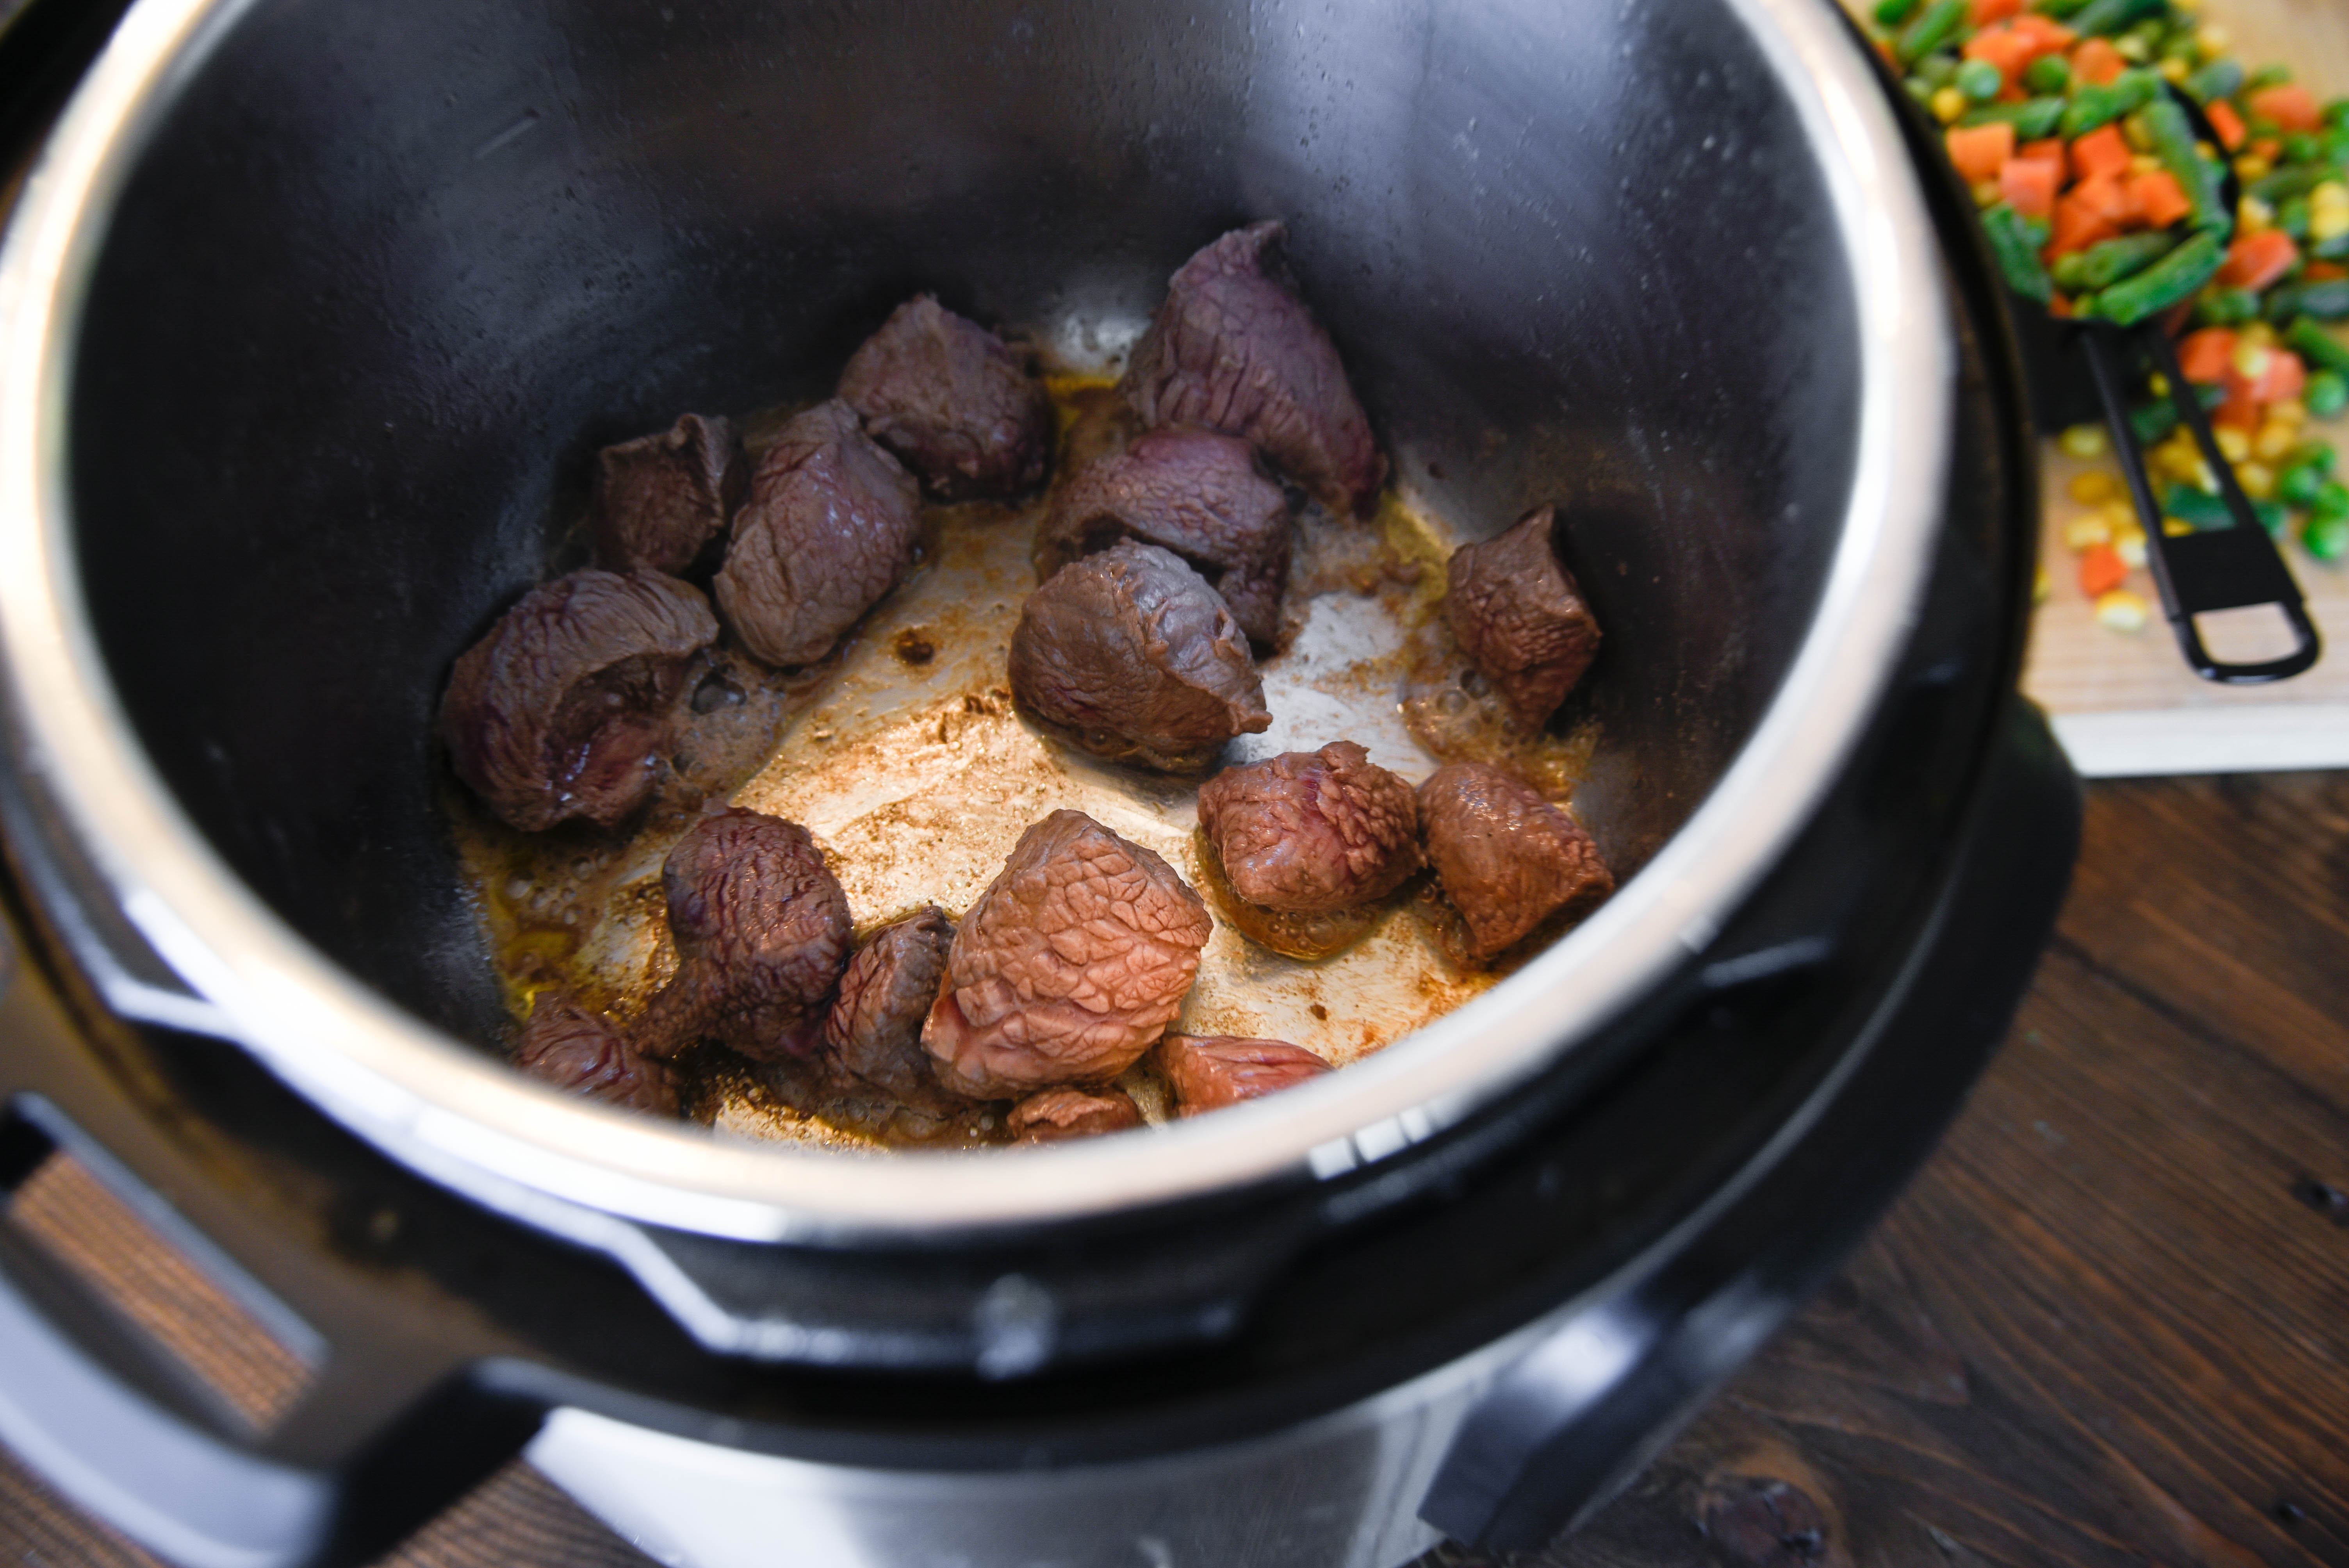 Chunks of beef sizzling at the bottom of a pressure cooker.